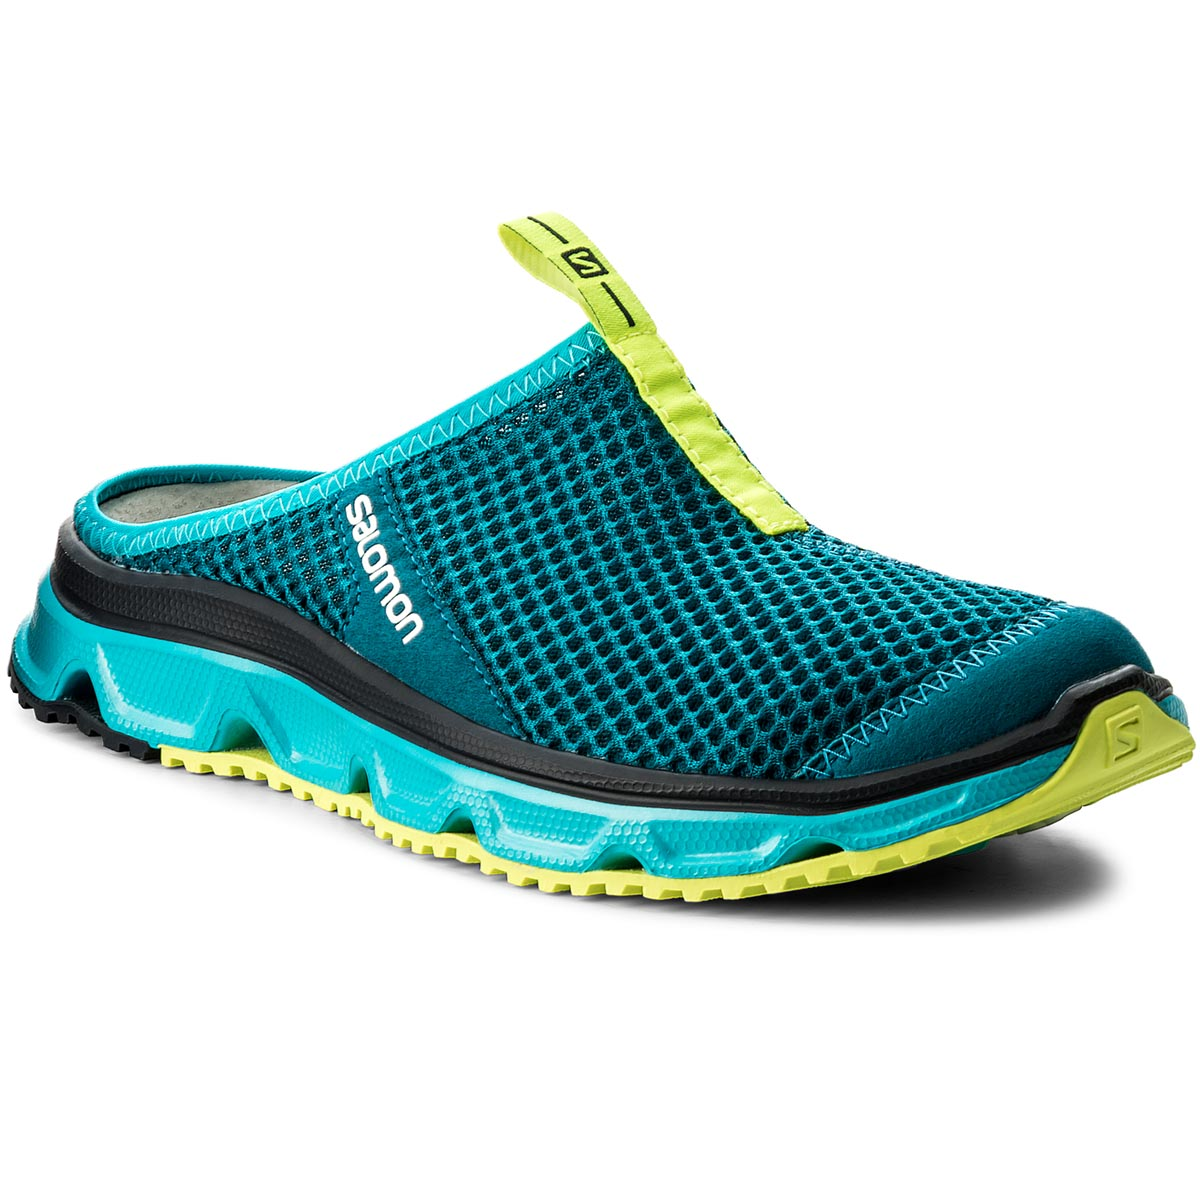 buy popular ac9b3 b99ed Sandaler SALOMON - Rx Slide 3.0 W 401455 21 M0 Deep Lagoon Bluebird Safety